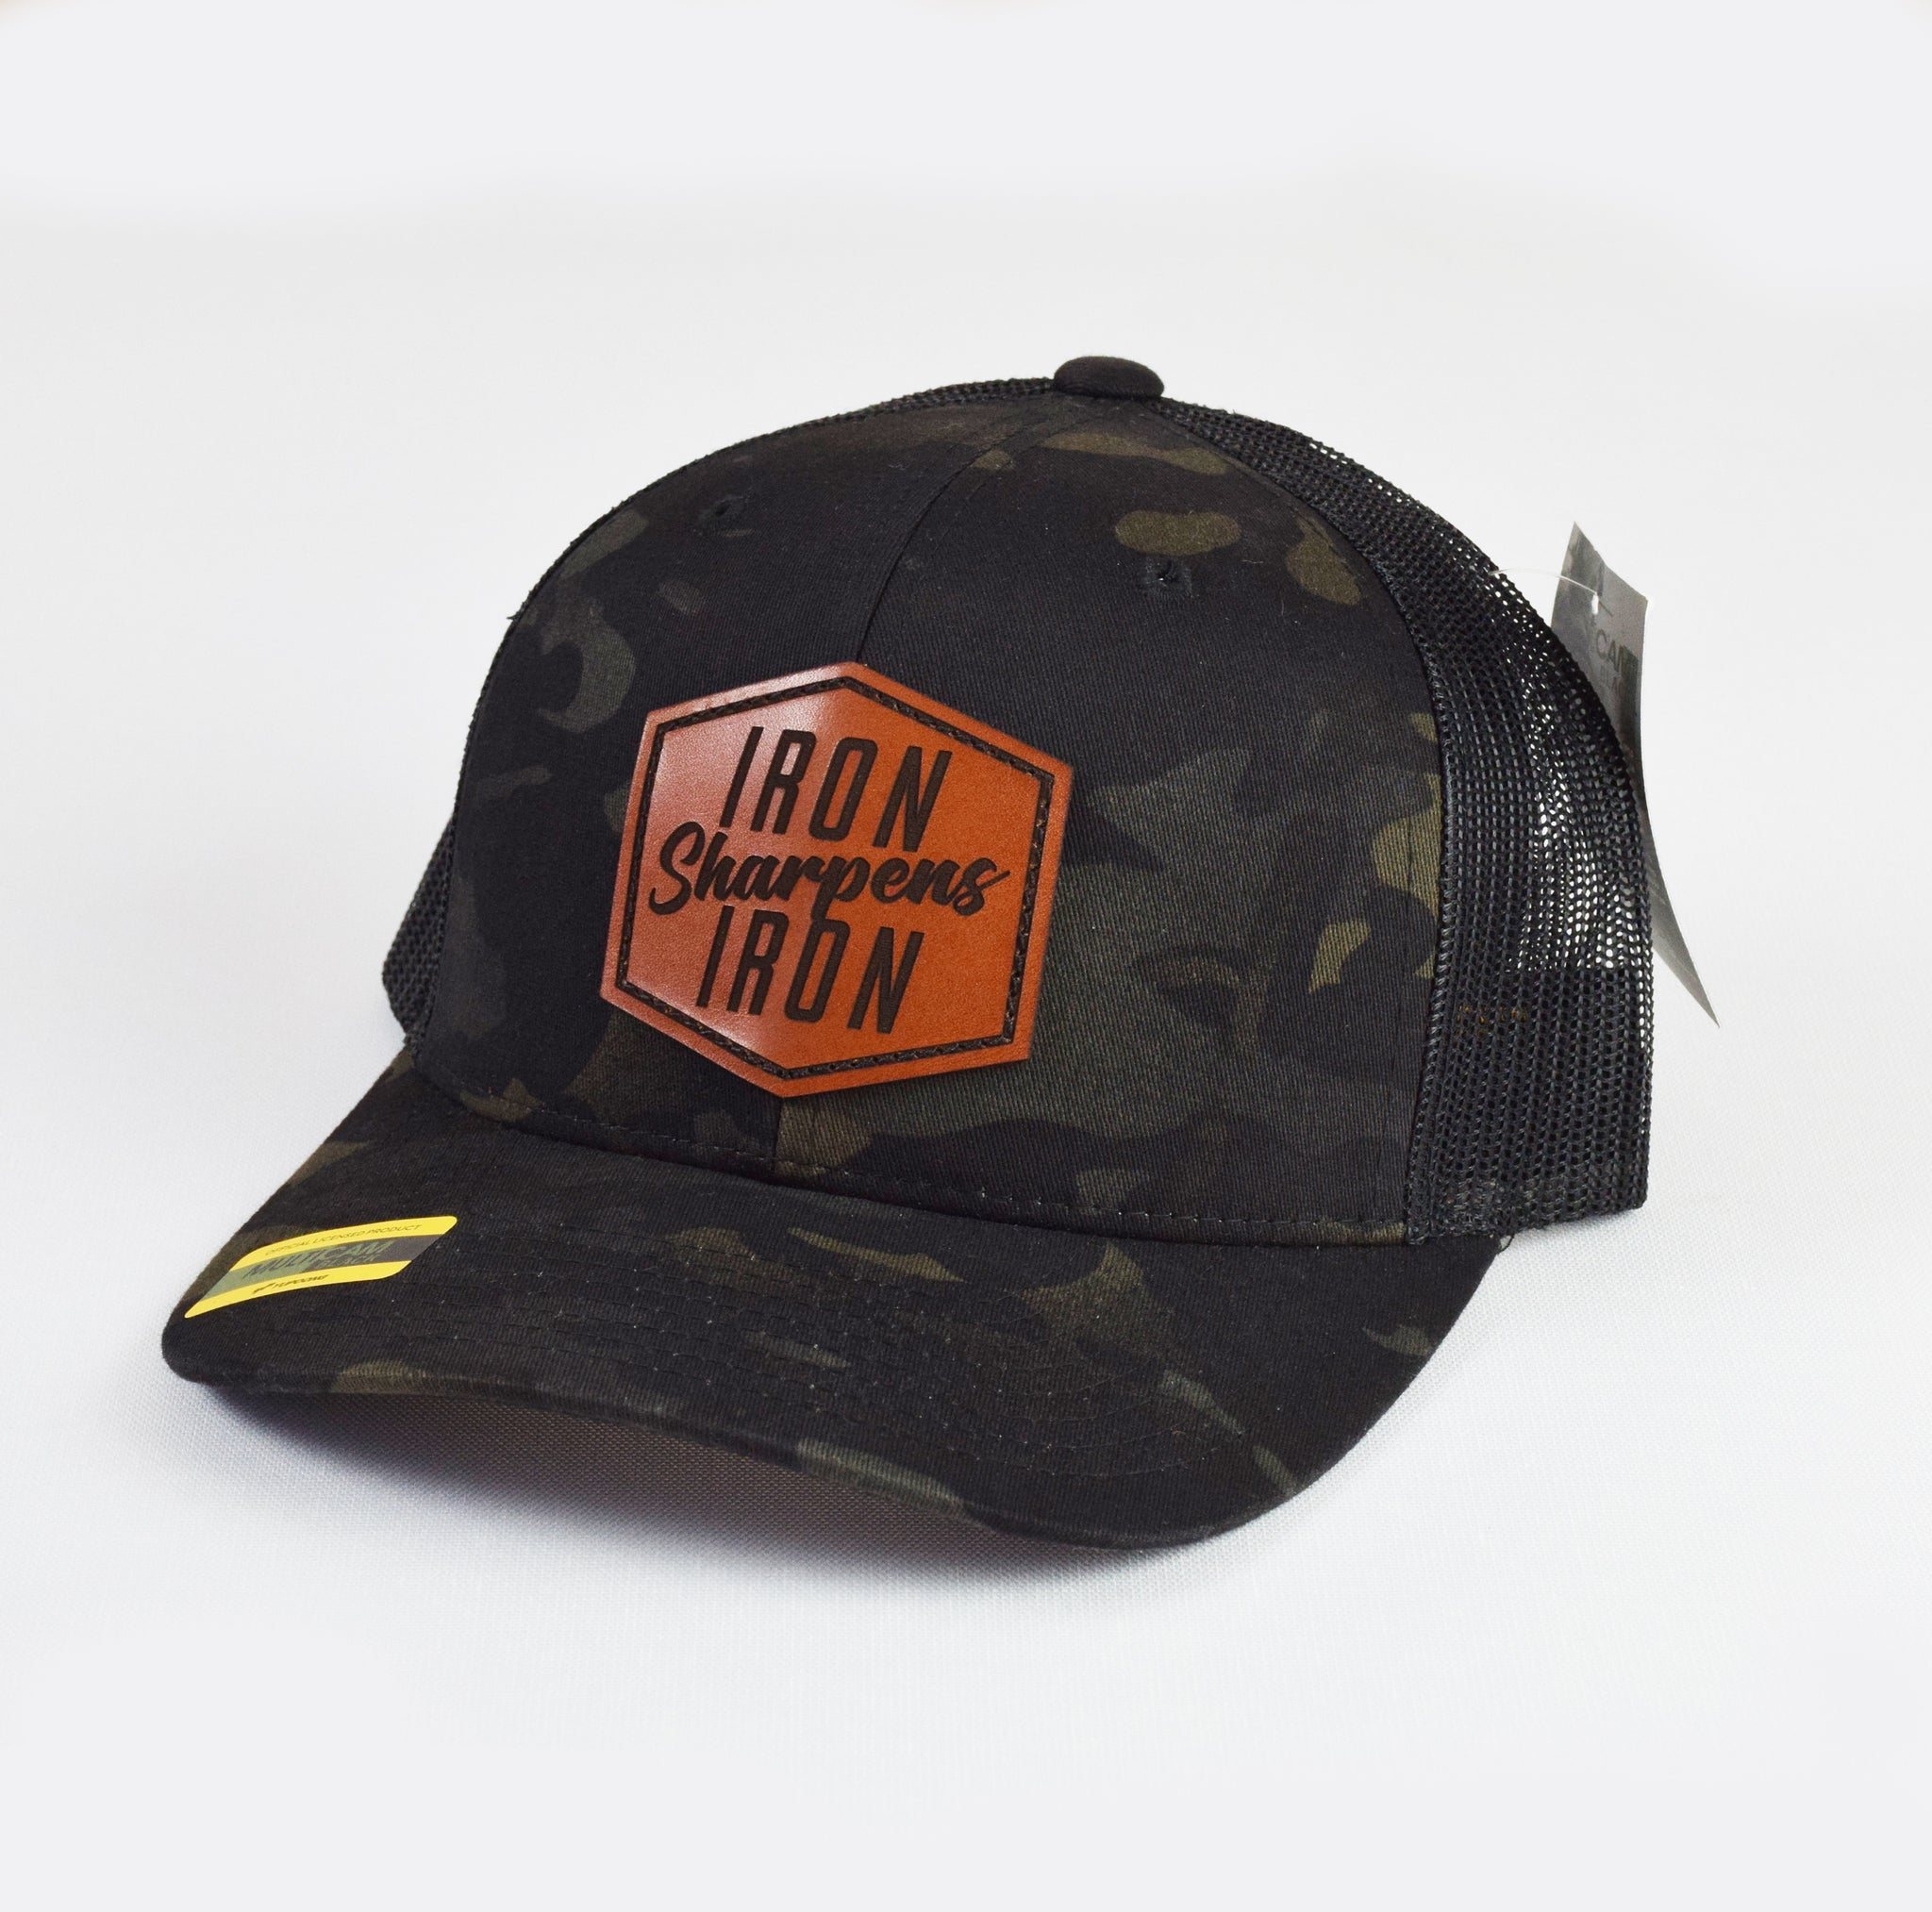 Iron Sharpens Iron SnapBack